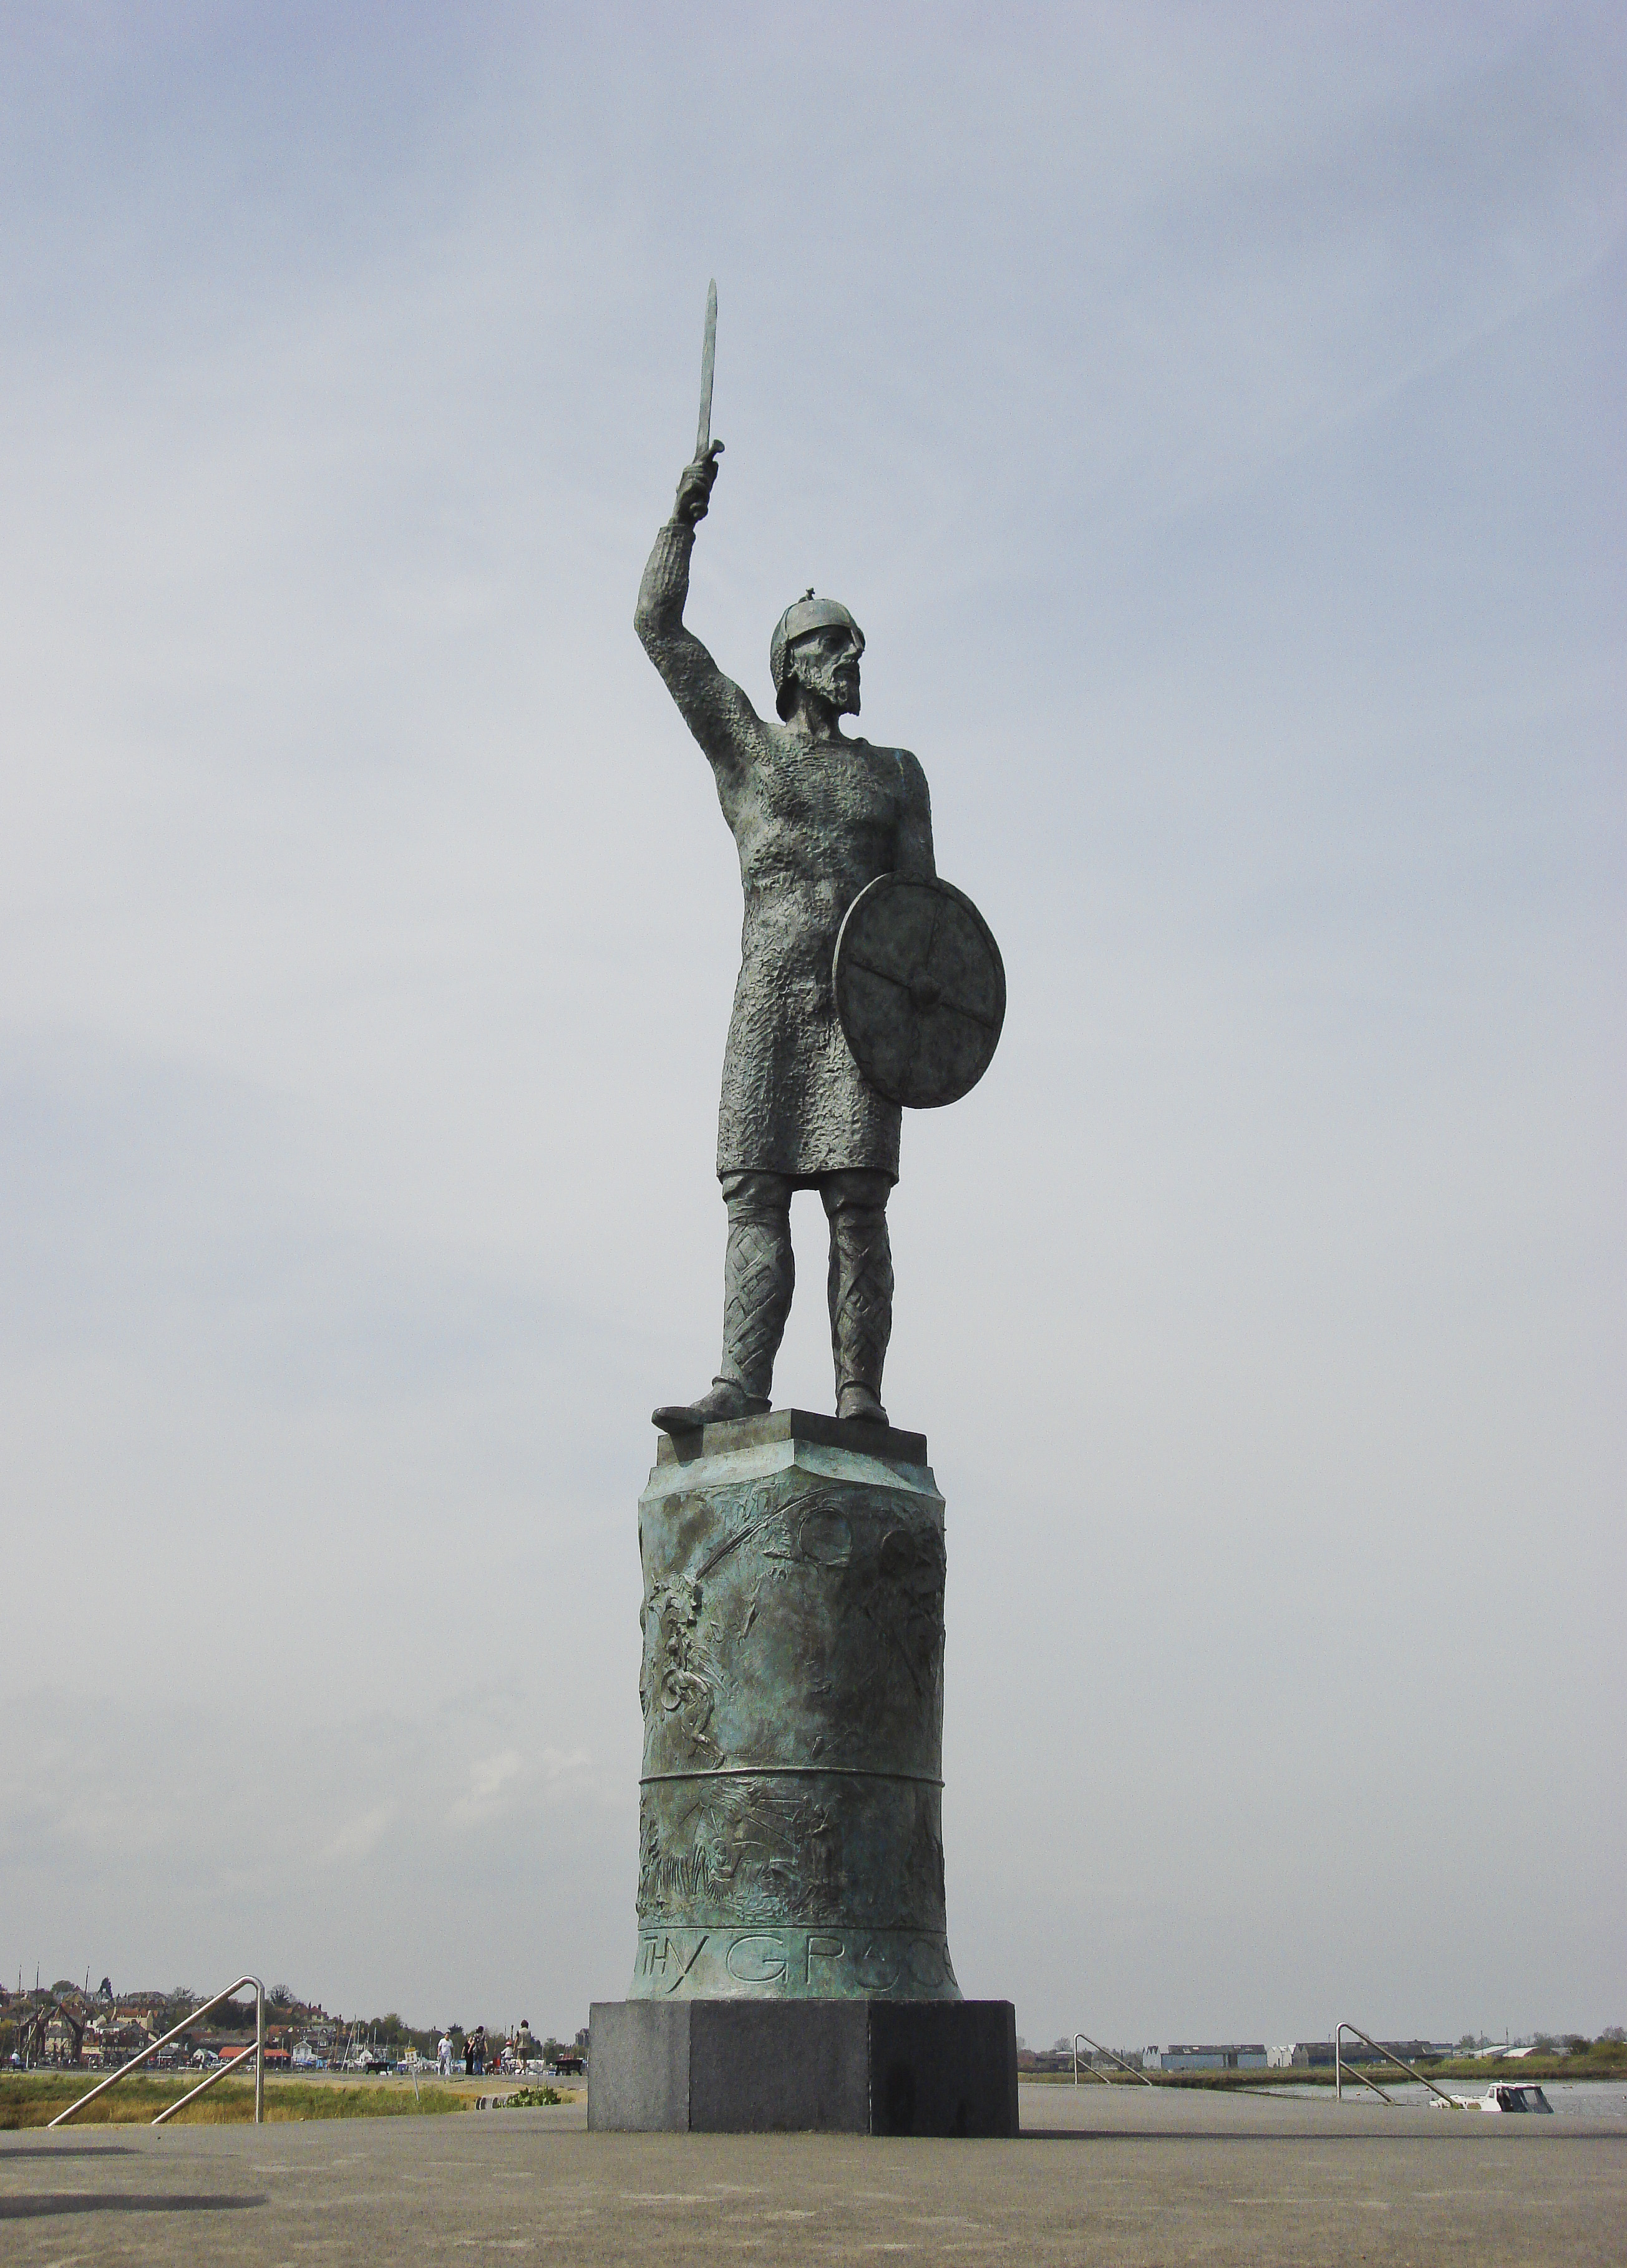 http://upload.wikimedia.org/wikipedia/commons/4/4b/Brythnoth_statue_Maldon.jpg